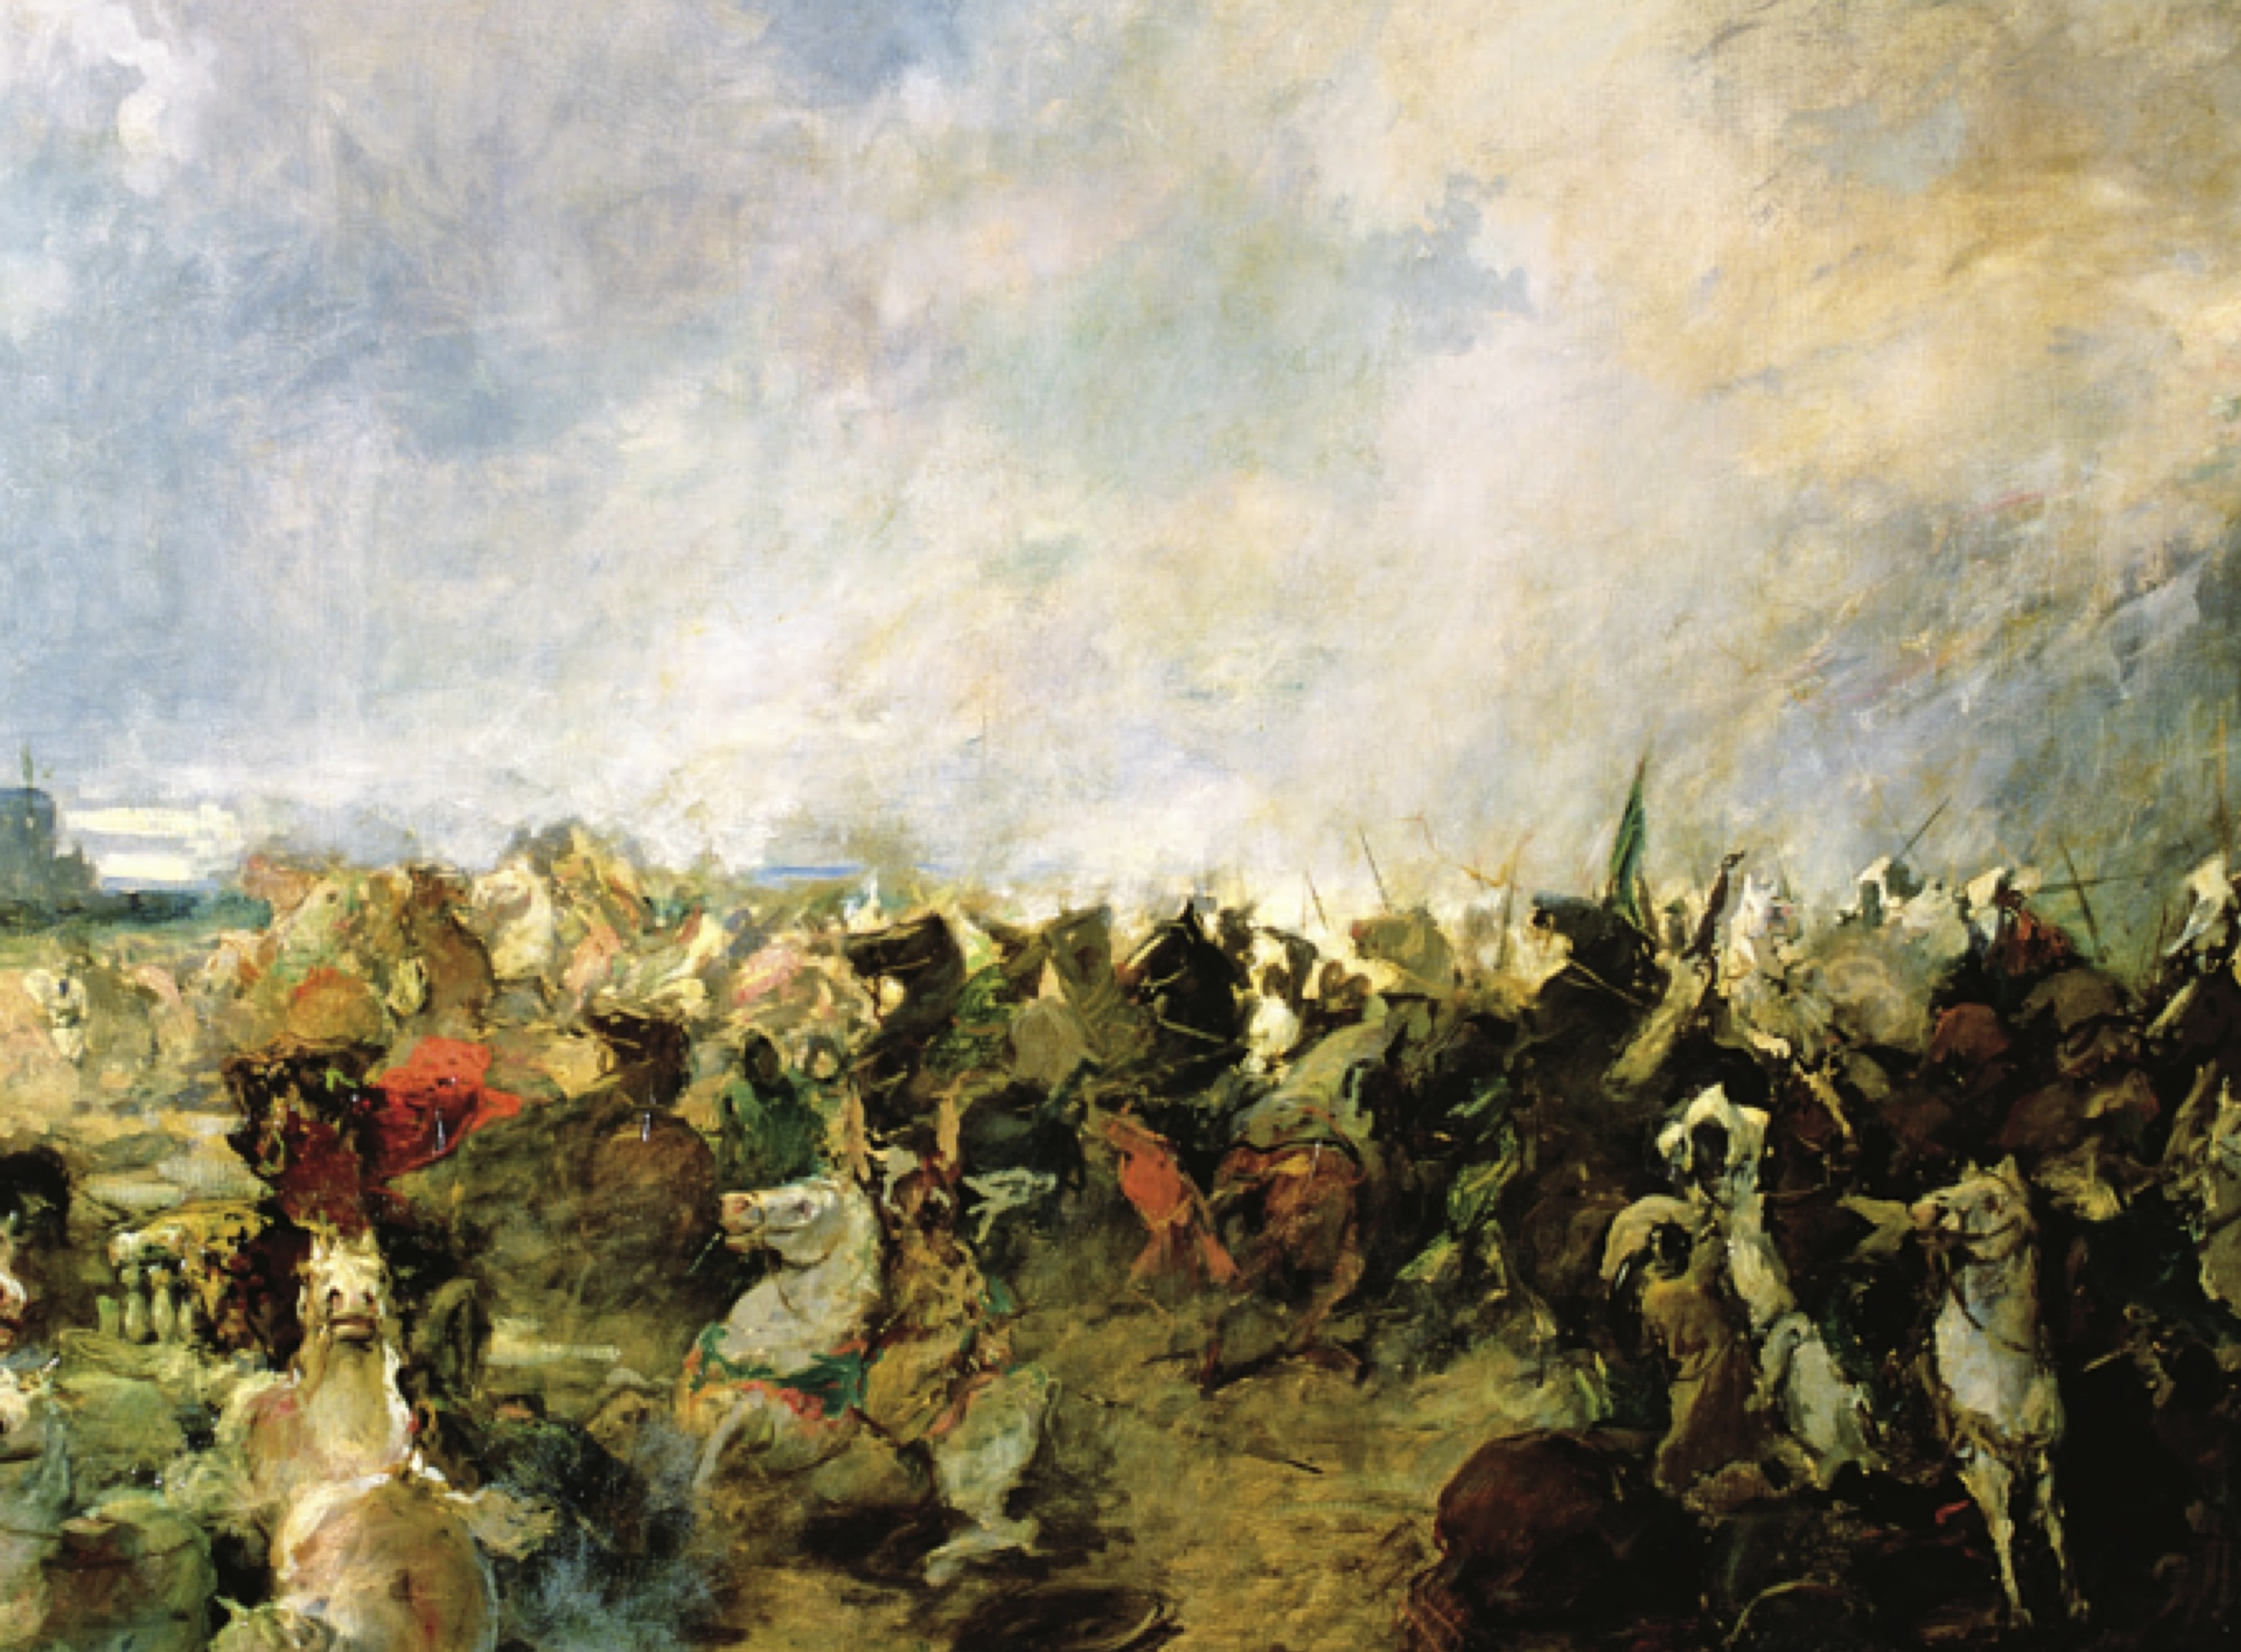 https://upload.wikimedia.org/wikipedia/commons/2/25/The_battle_of_Guadelete.jpg